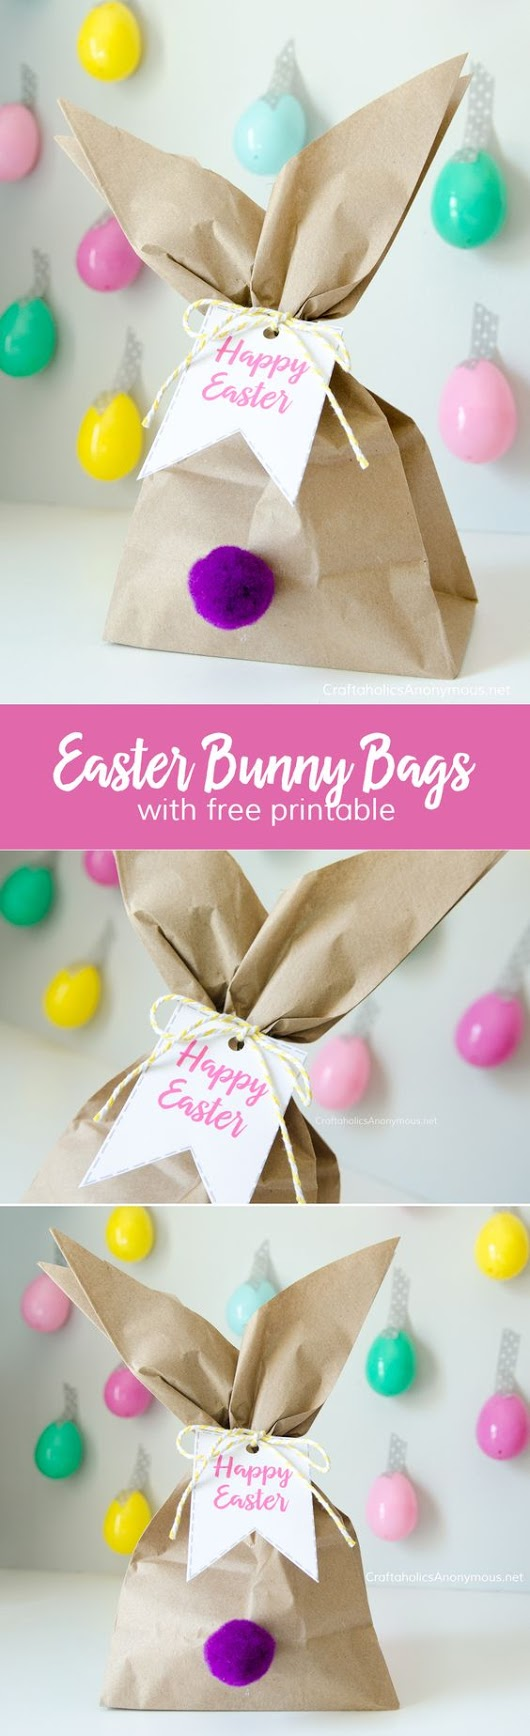 Best diy easy easter gifts and decoration ideas get the tutorial whip up these easy easter bunny gift bags in minutes perfect last minute easter craft for easter gift giving easter centerpiece or decor negle Image collections